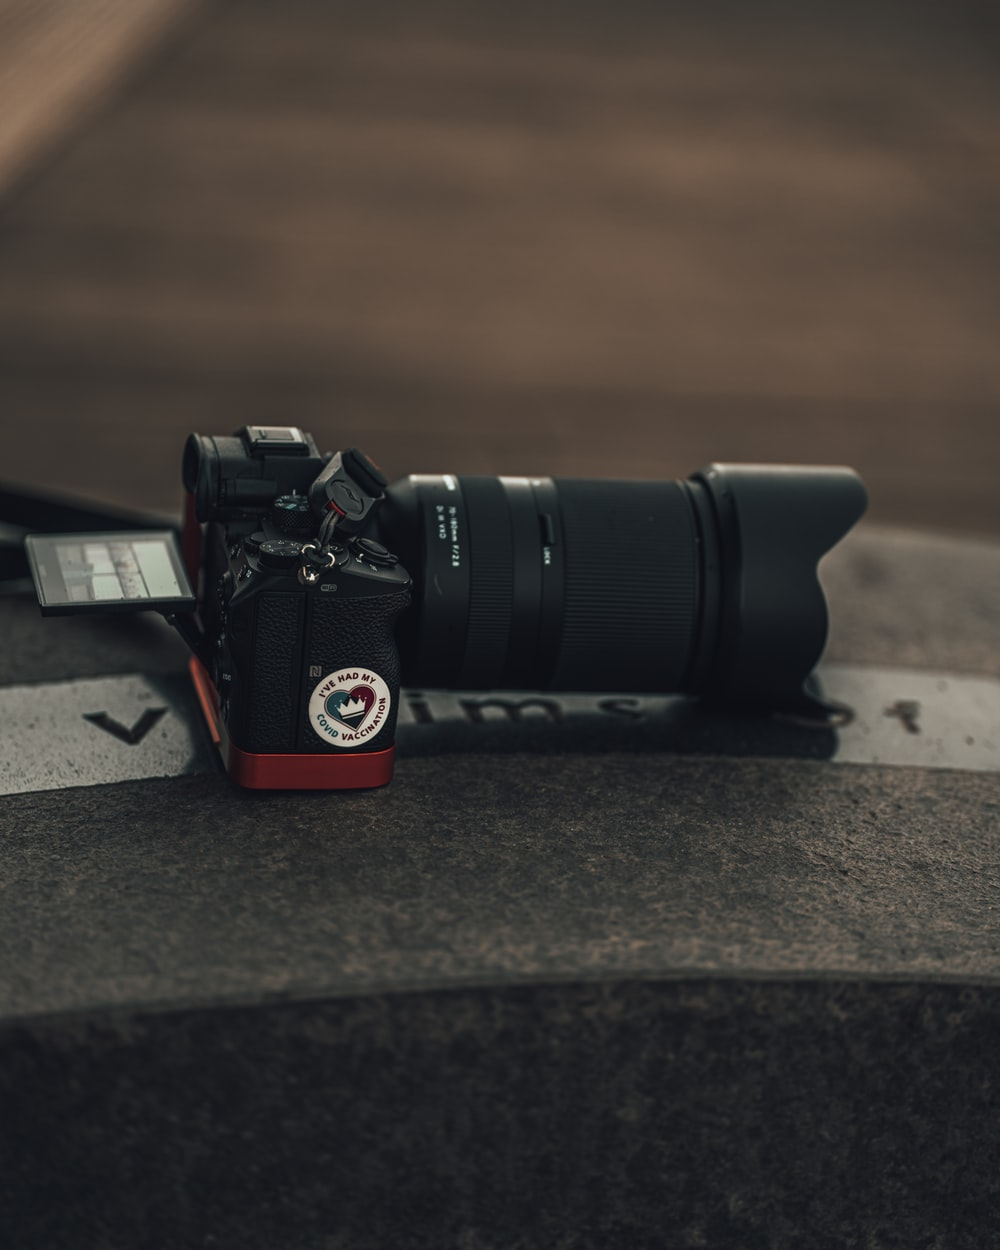 black and red dslr camera on gray concrete floor